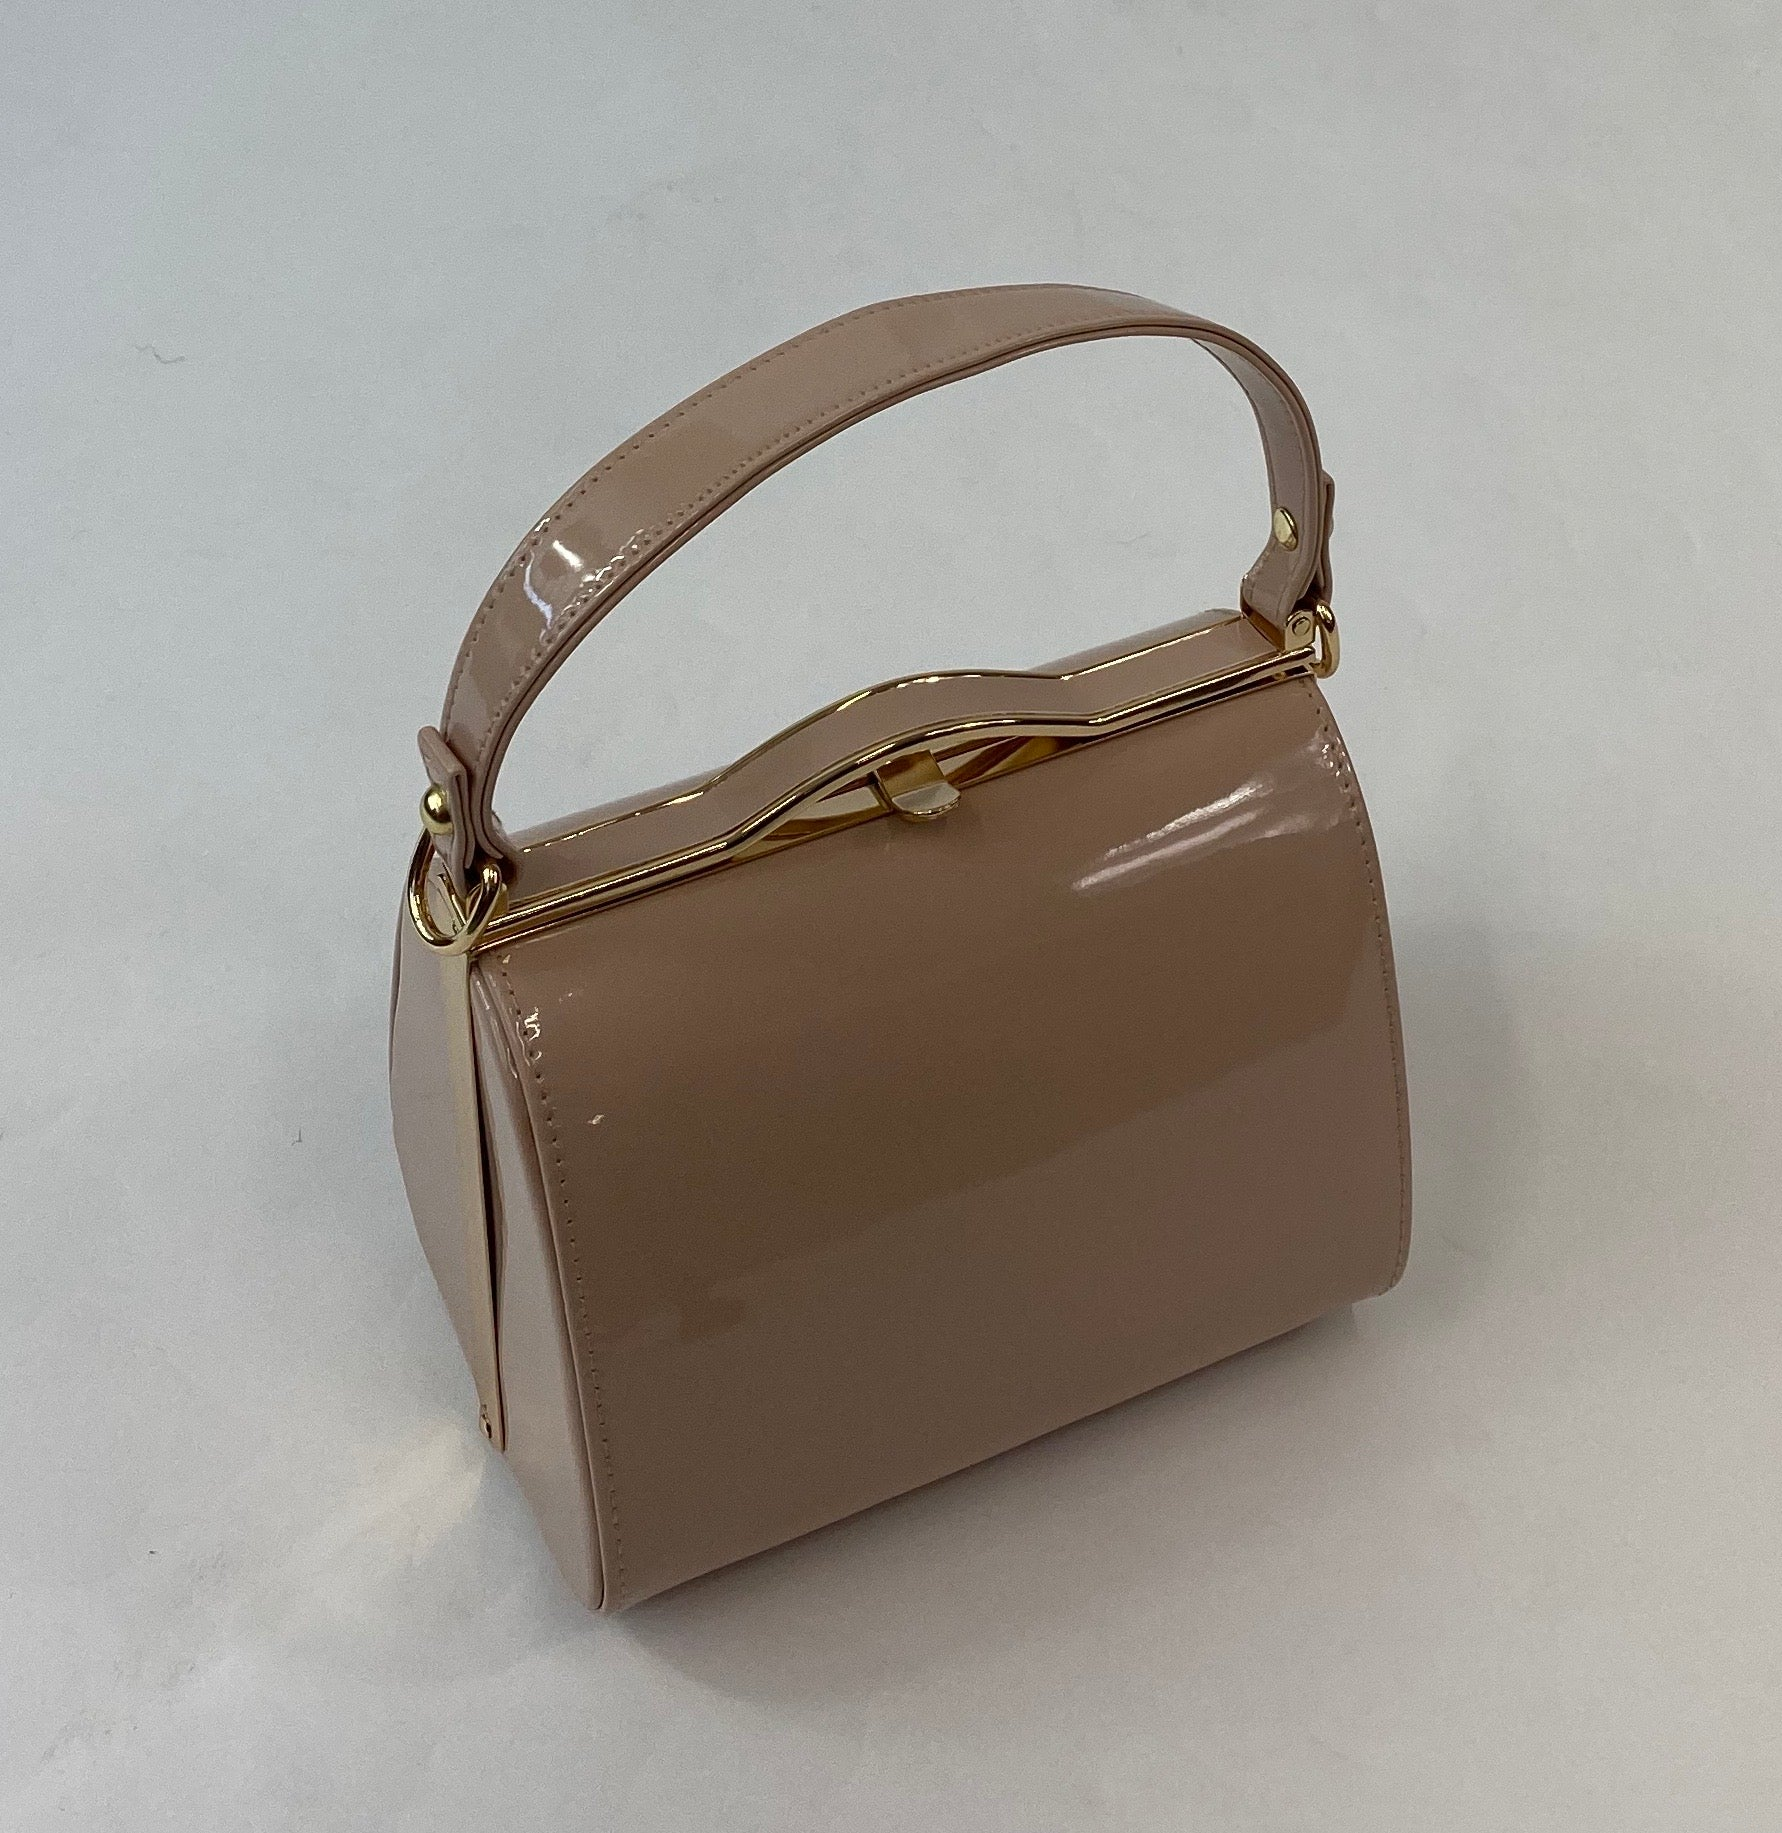 Classic Kelly Handbag in Nude - Vintage Inspired